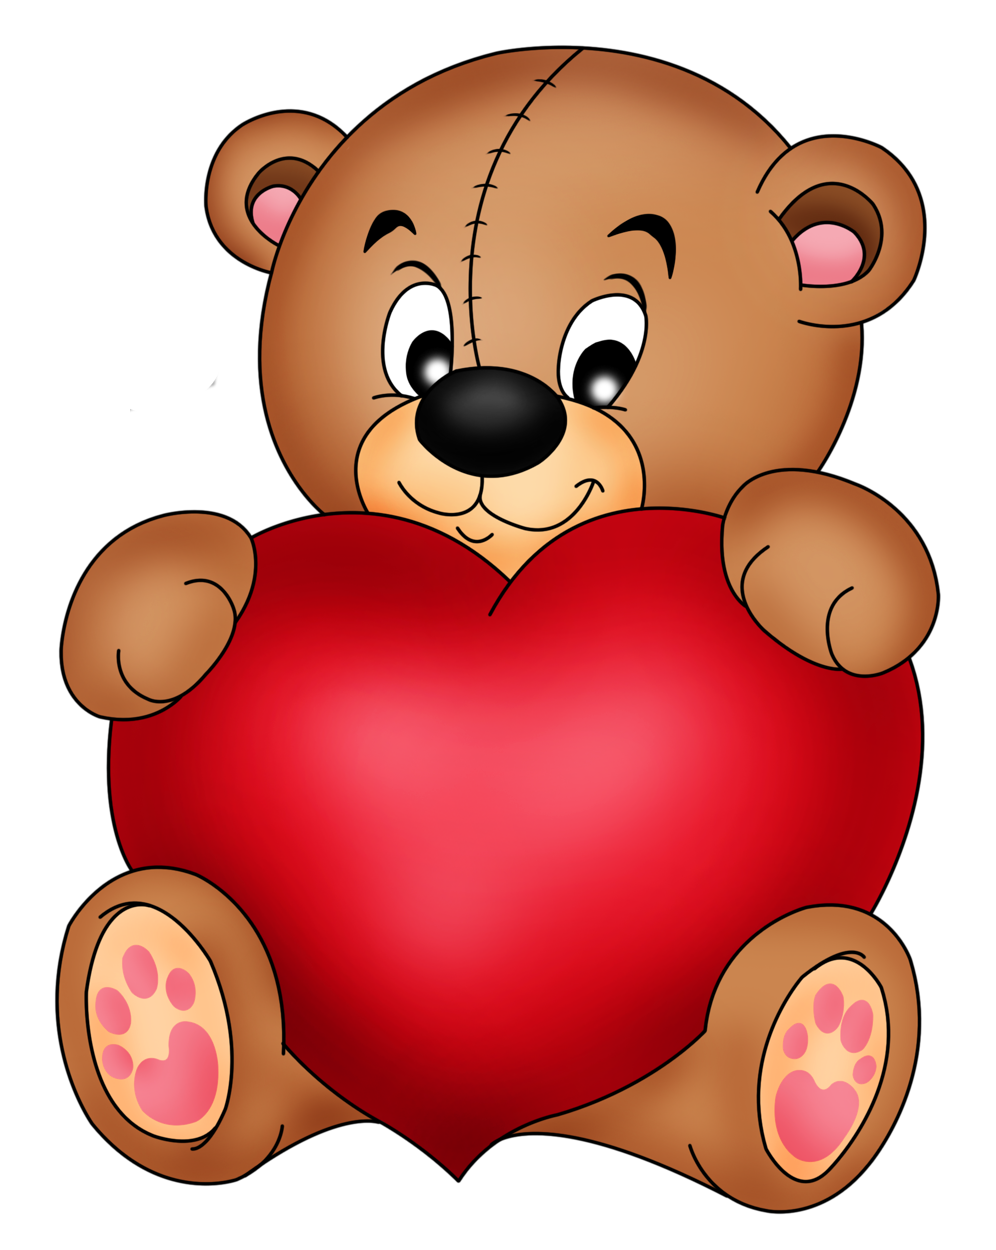 Valentine clipart hug. Brown teddy with red